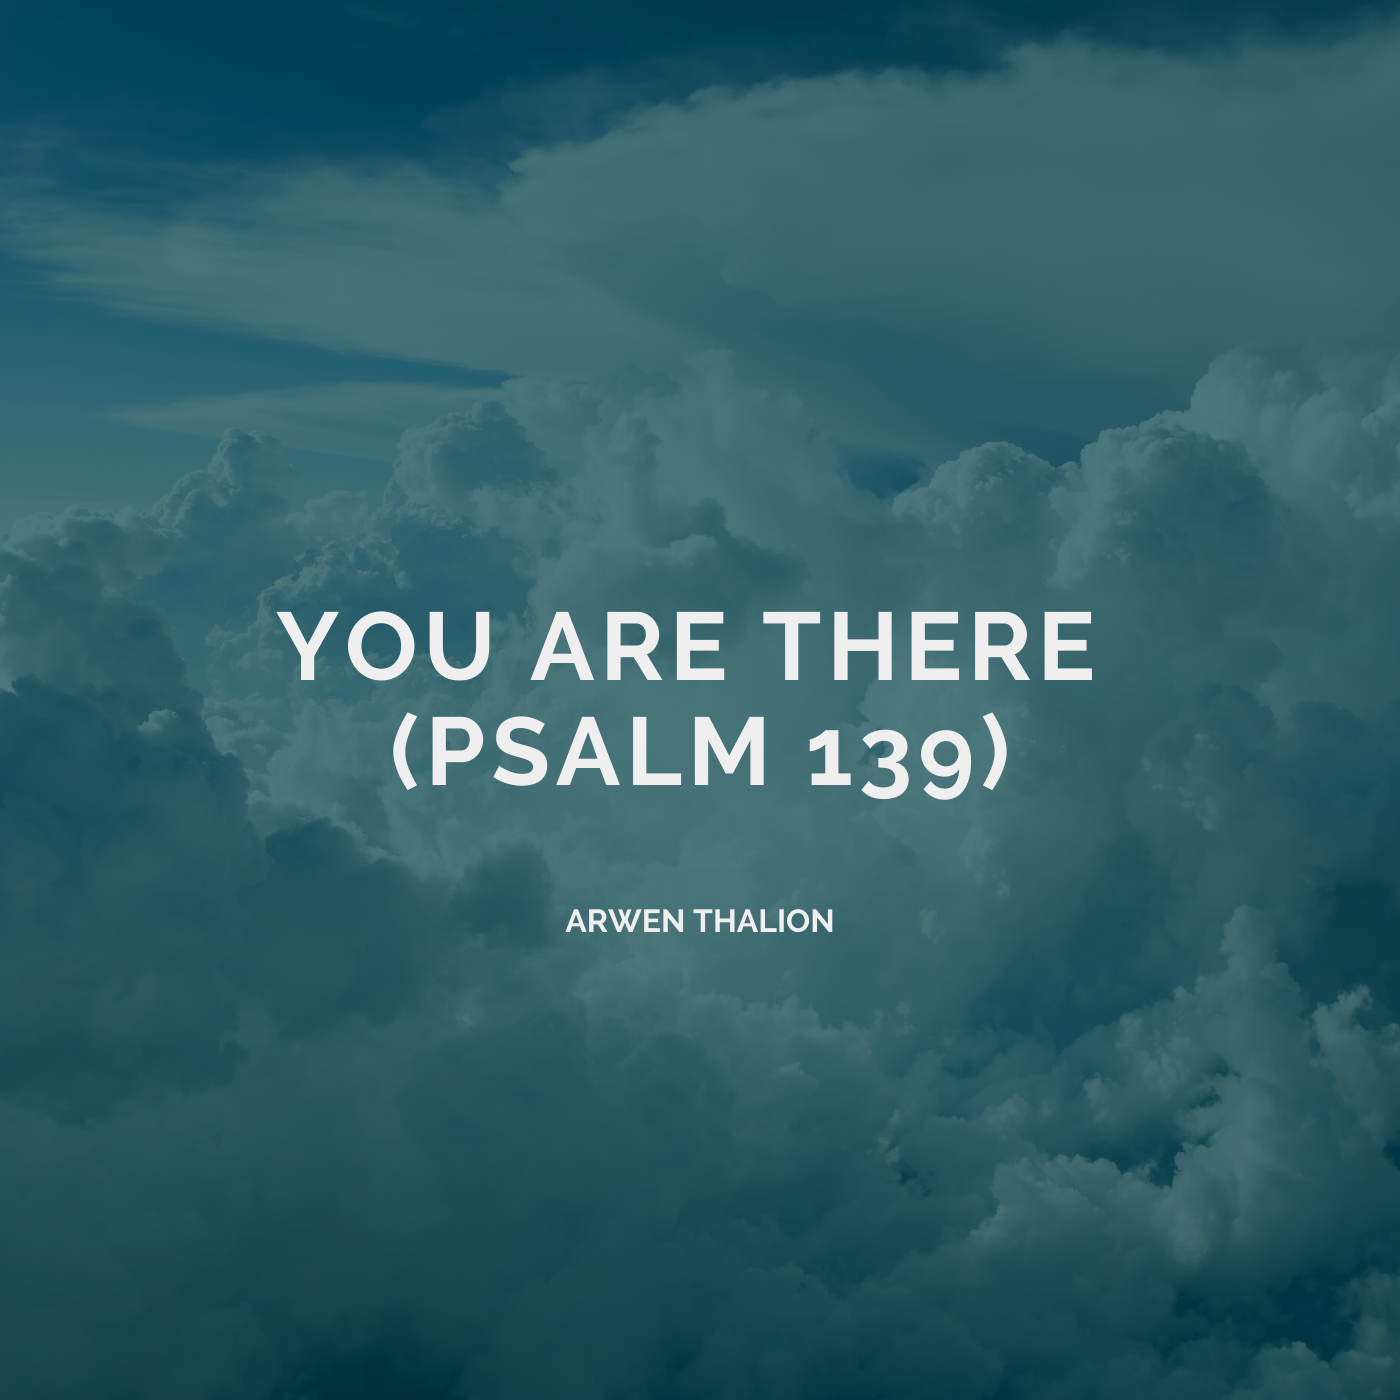 You Are There (Psalm 139) Image